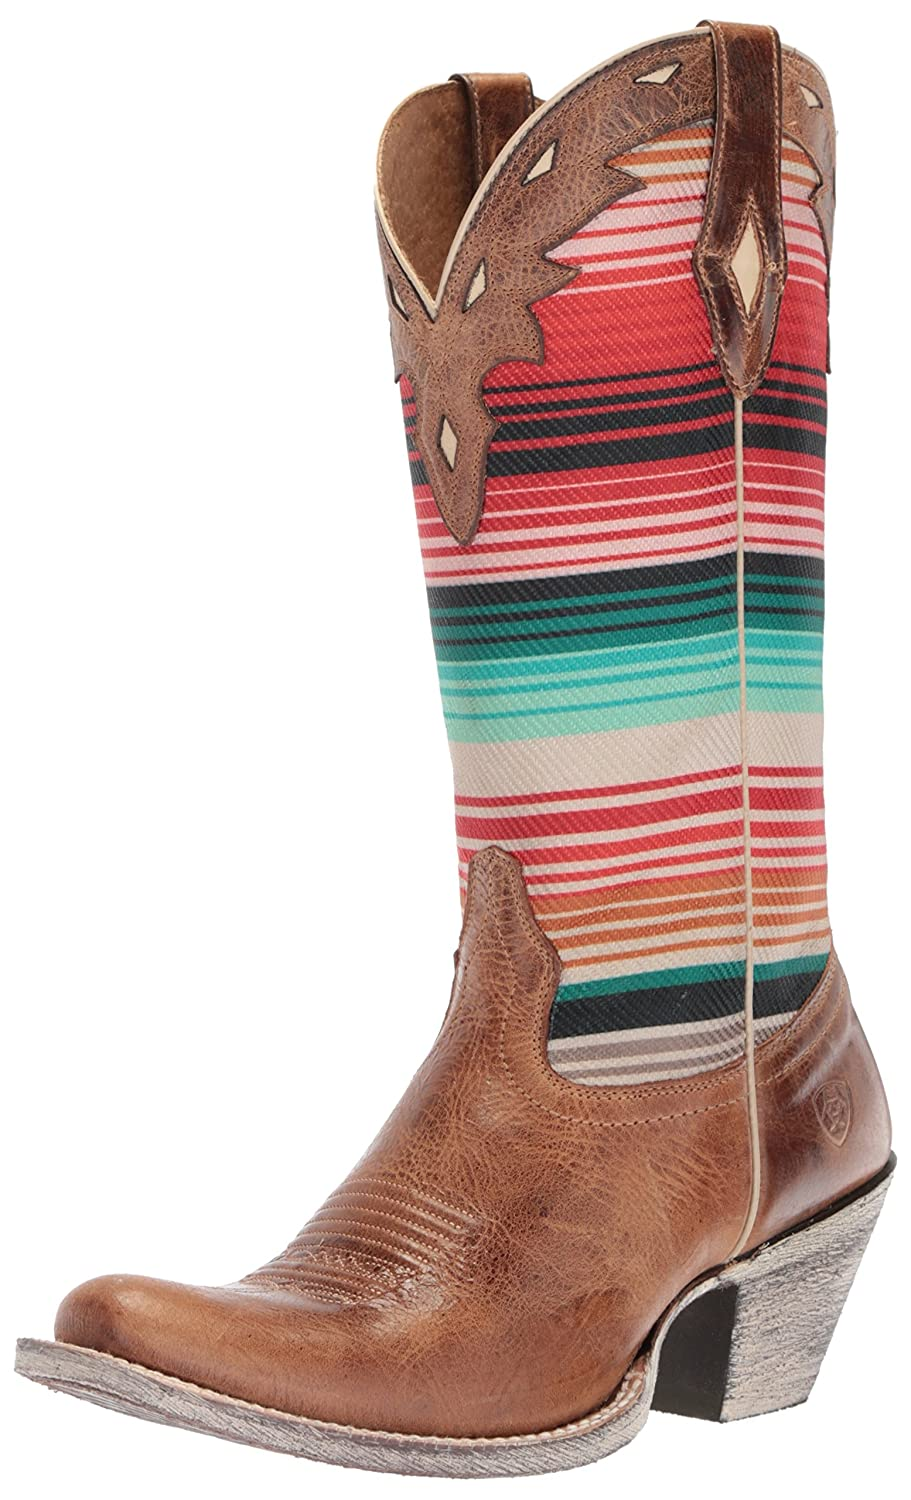 - Ariat Women's Women's Circuit Cheyenne Western Boot, Crackled Tan Southwestern Serape, 8.5 B US